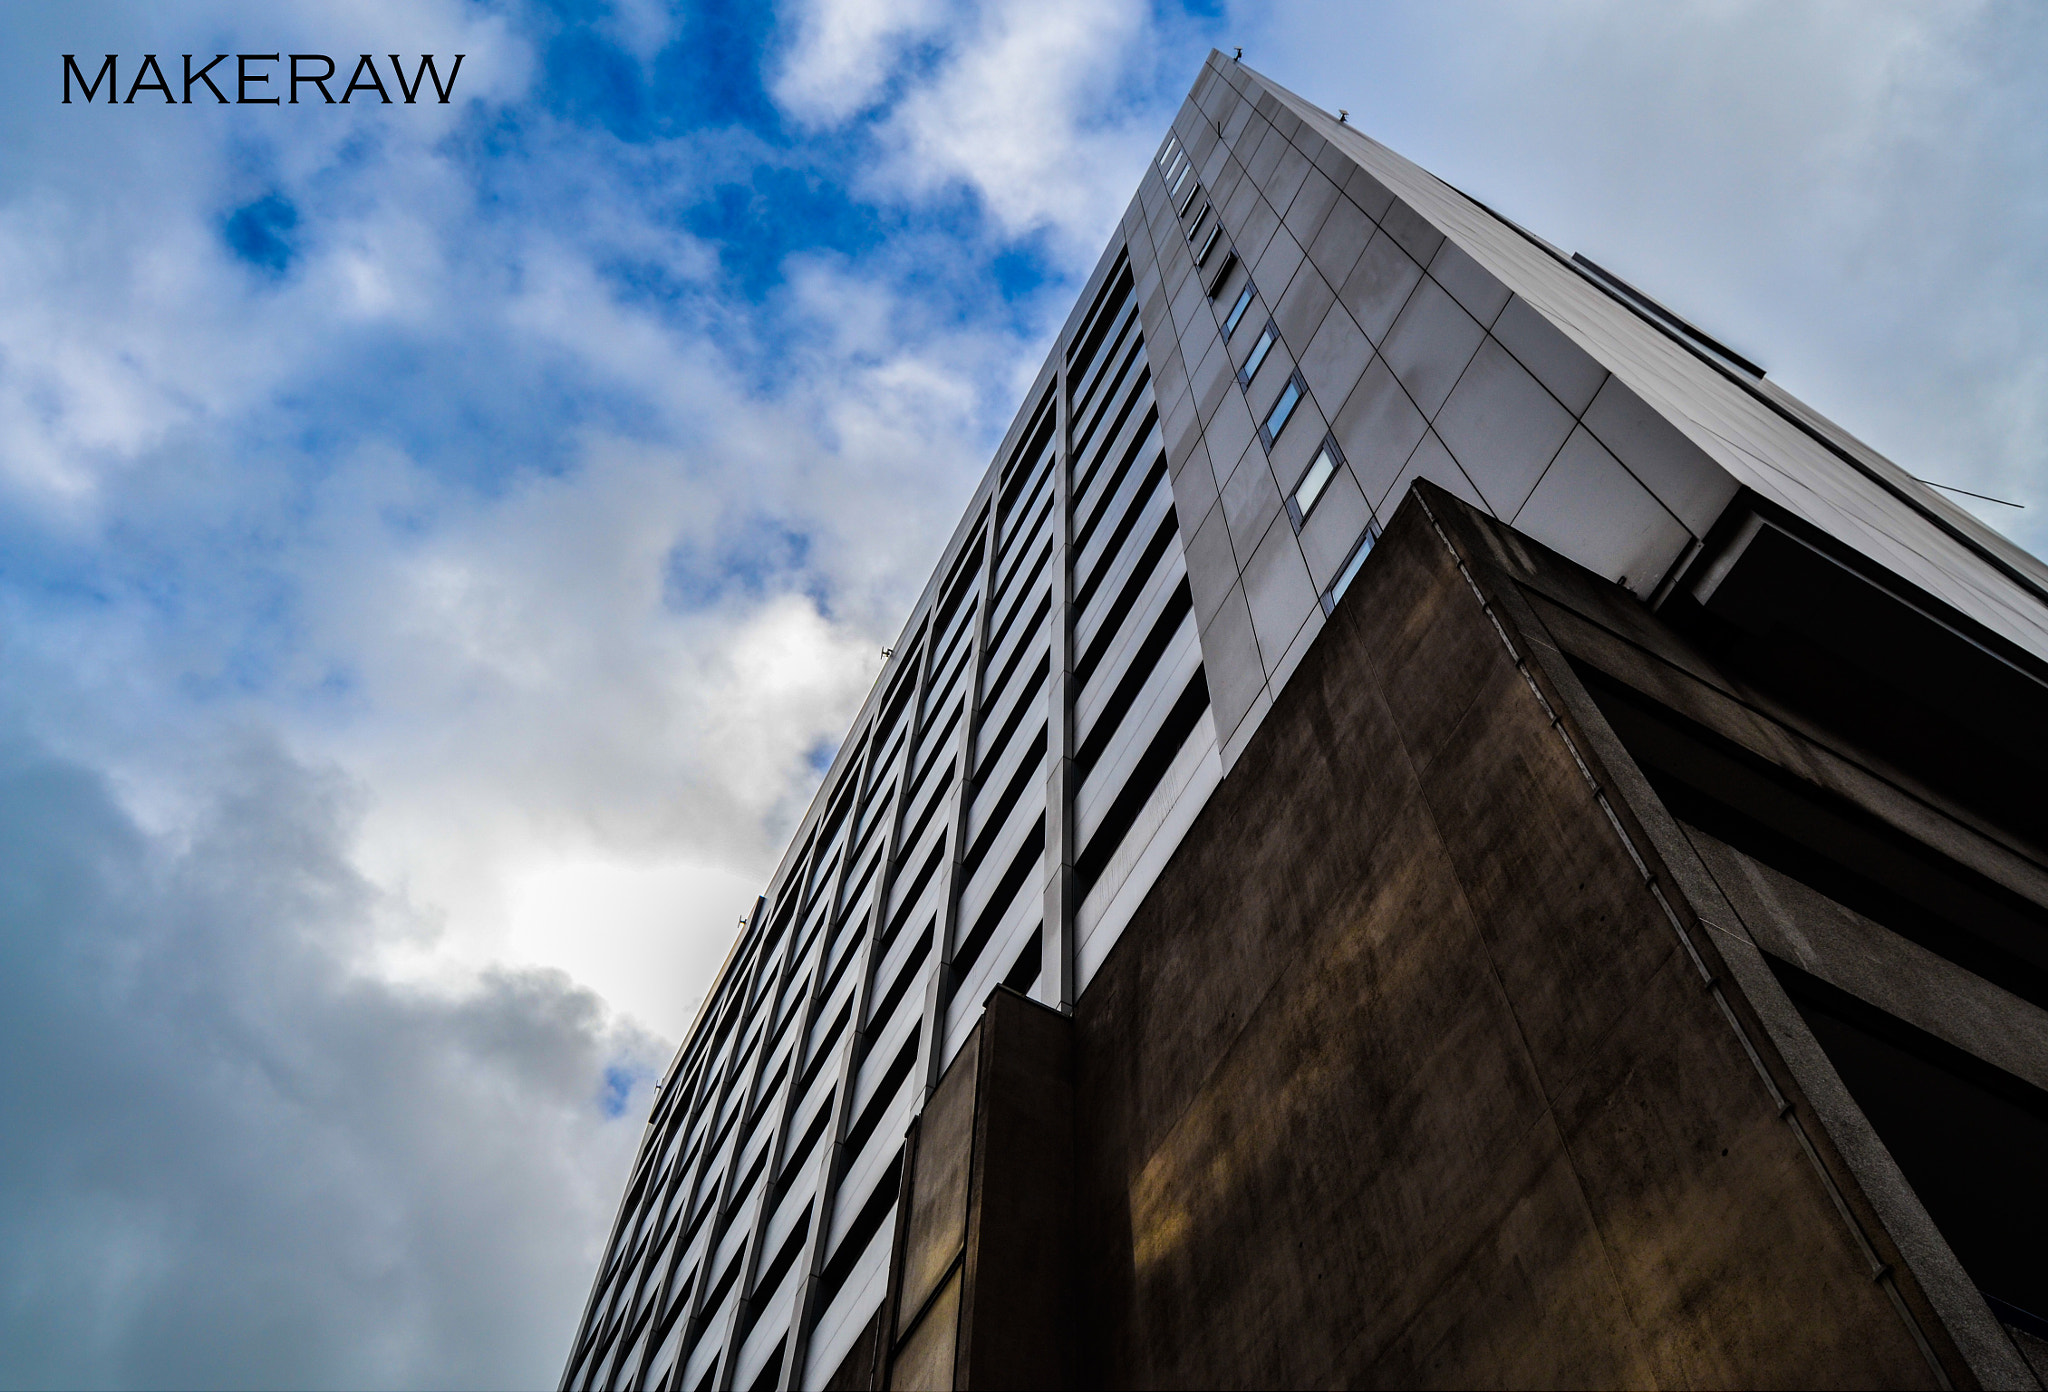 Photograph Architecture, London #1 by Makeraw Photography on 500px